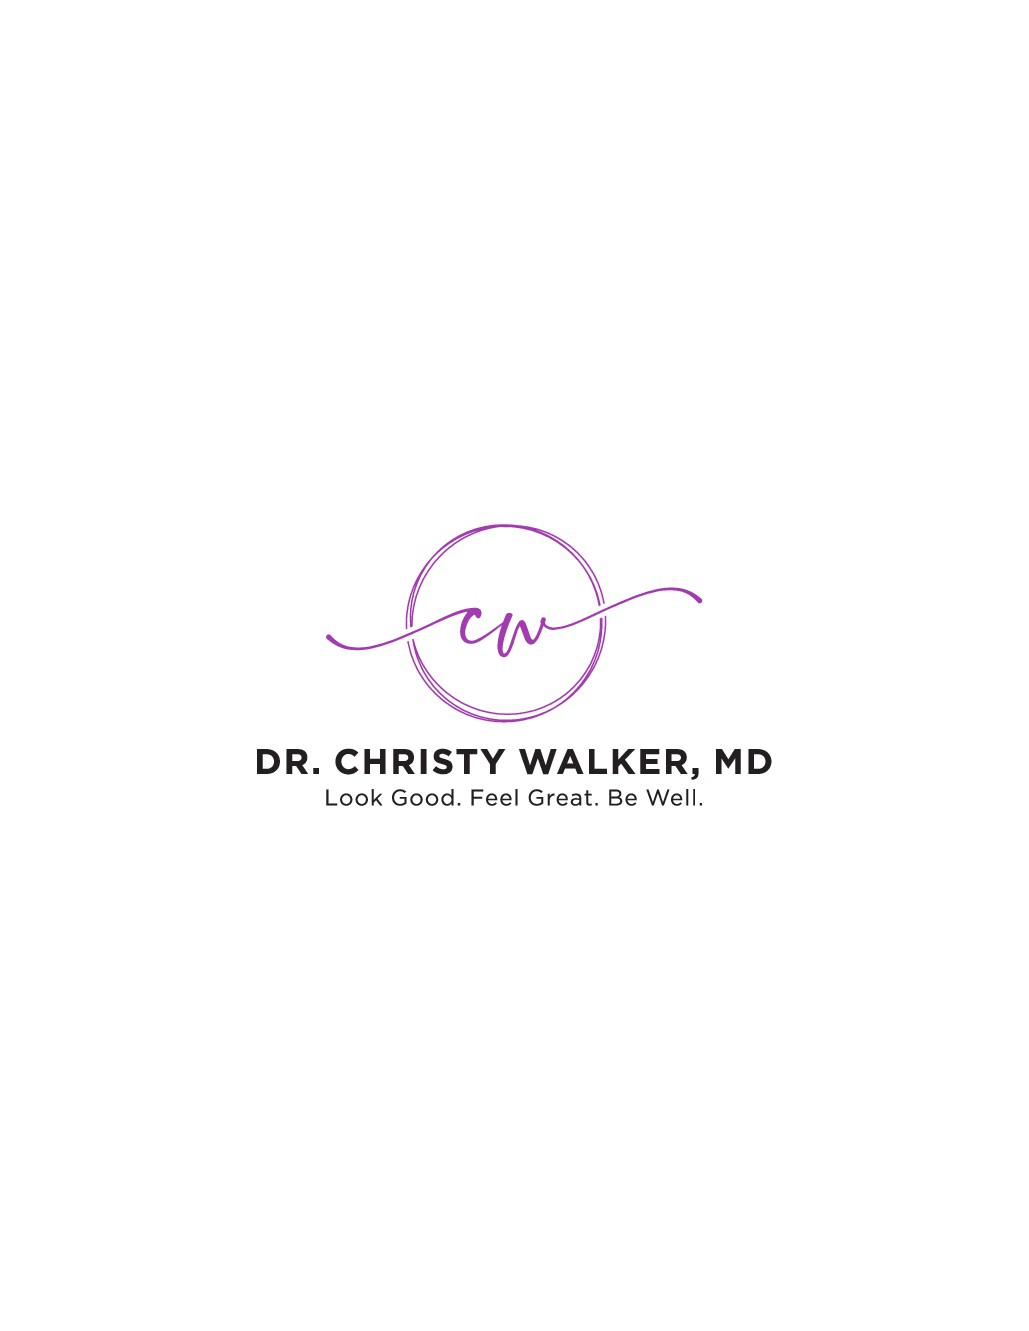 Clean and contemporary logo for a luxury women's health and cosmetic surgery center